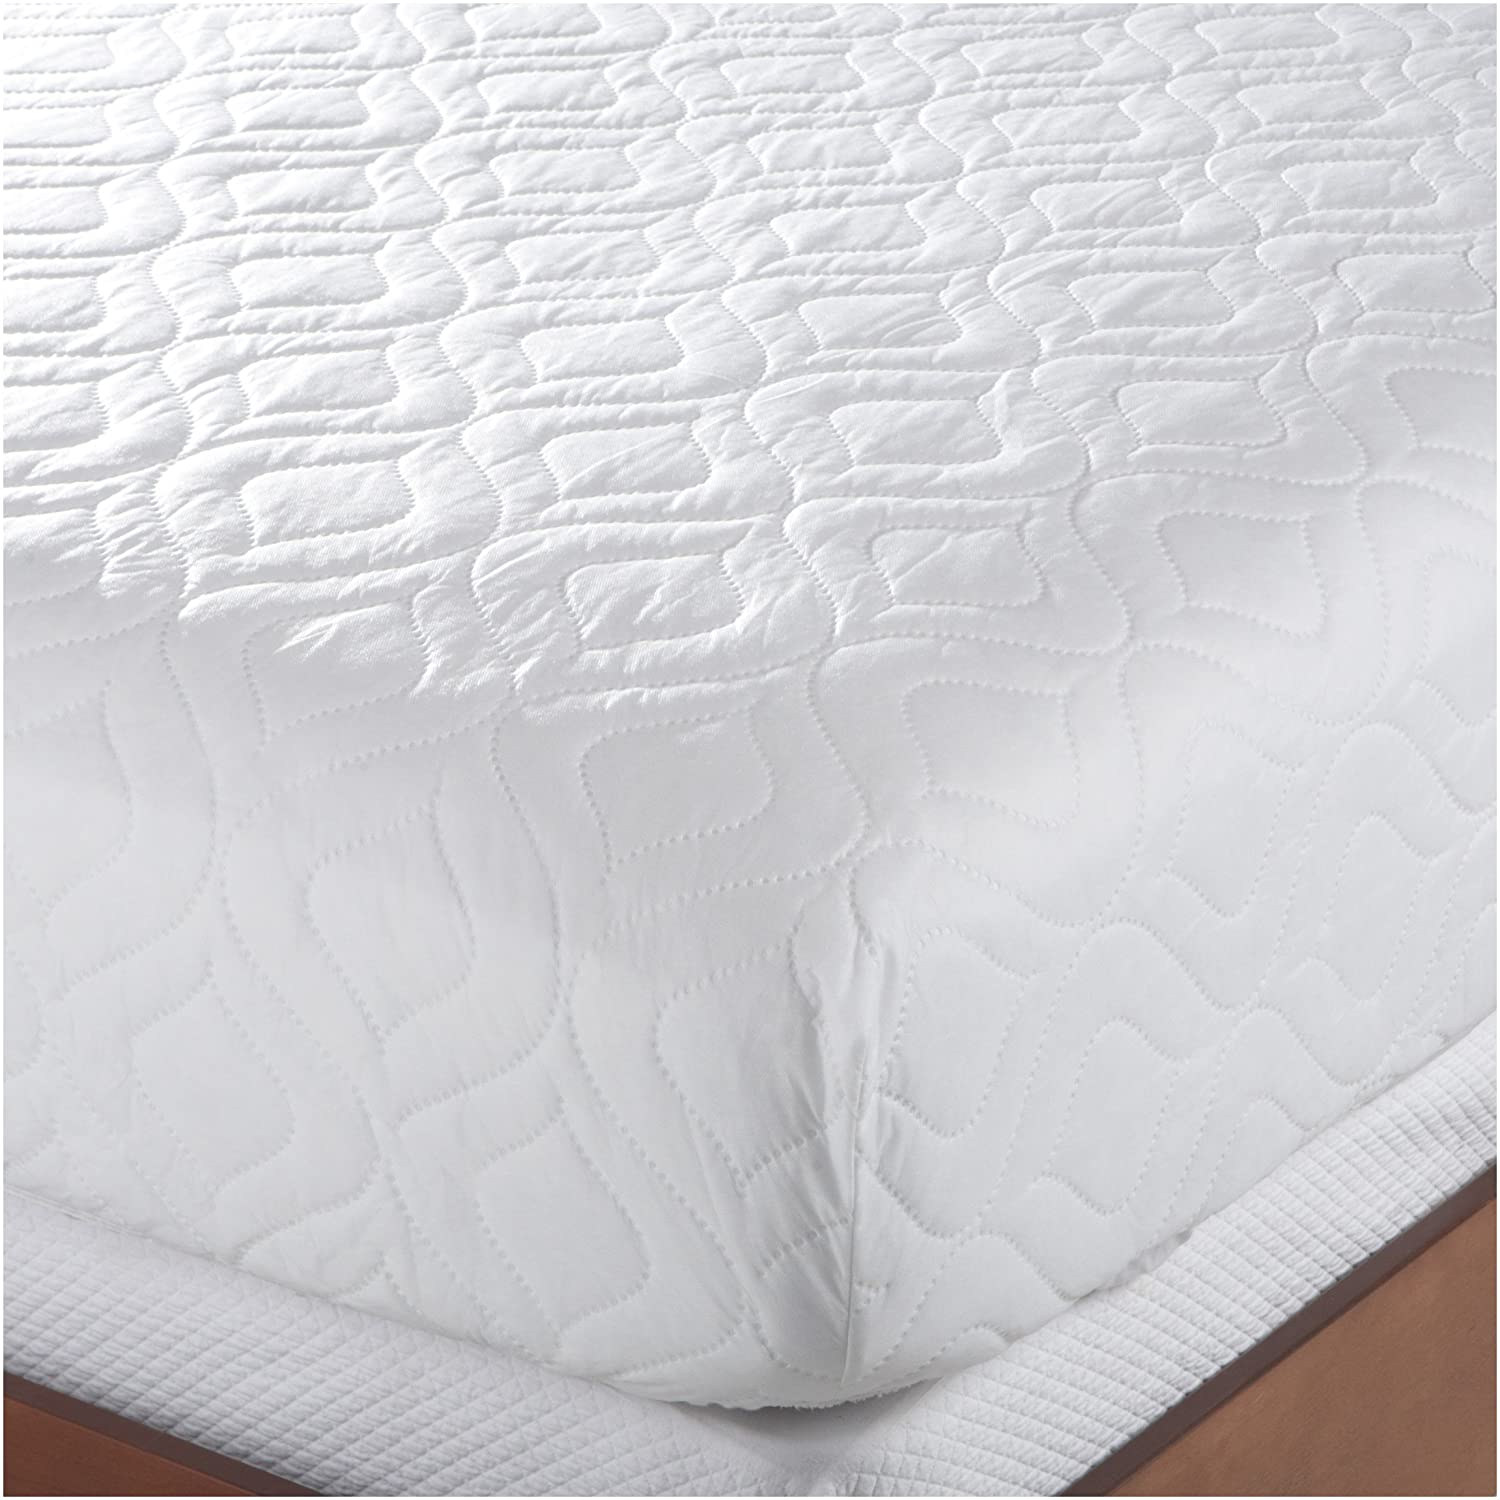 to cool size design your resistant mattress kingcool top timeless king protect home apply high decor twin cover topper memory definition pillowtop pillow interior pad luxury